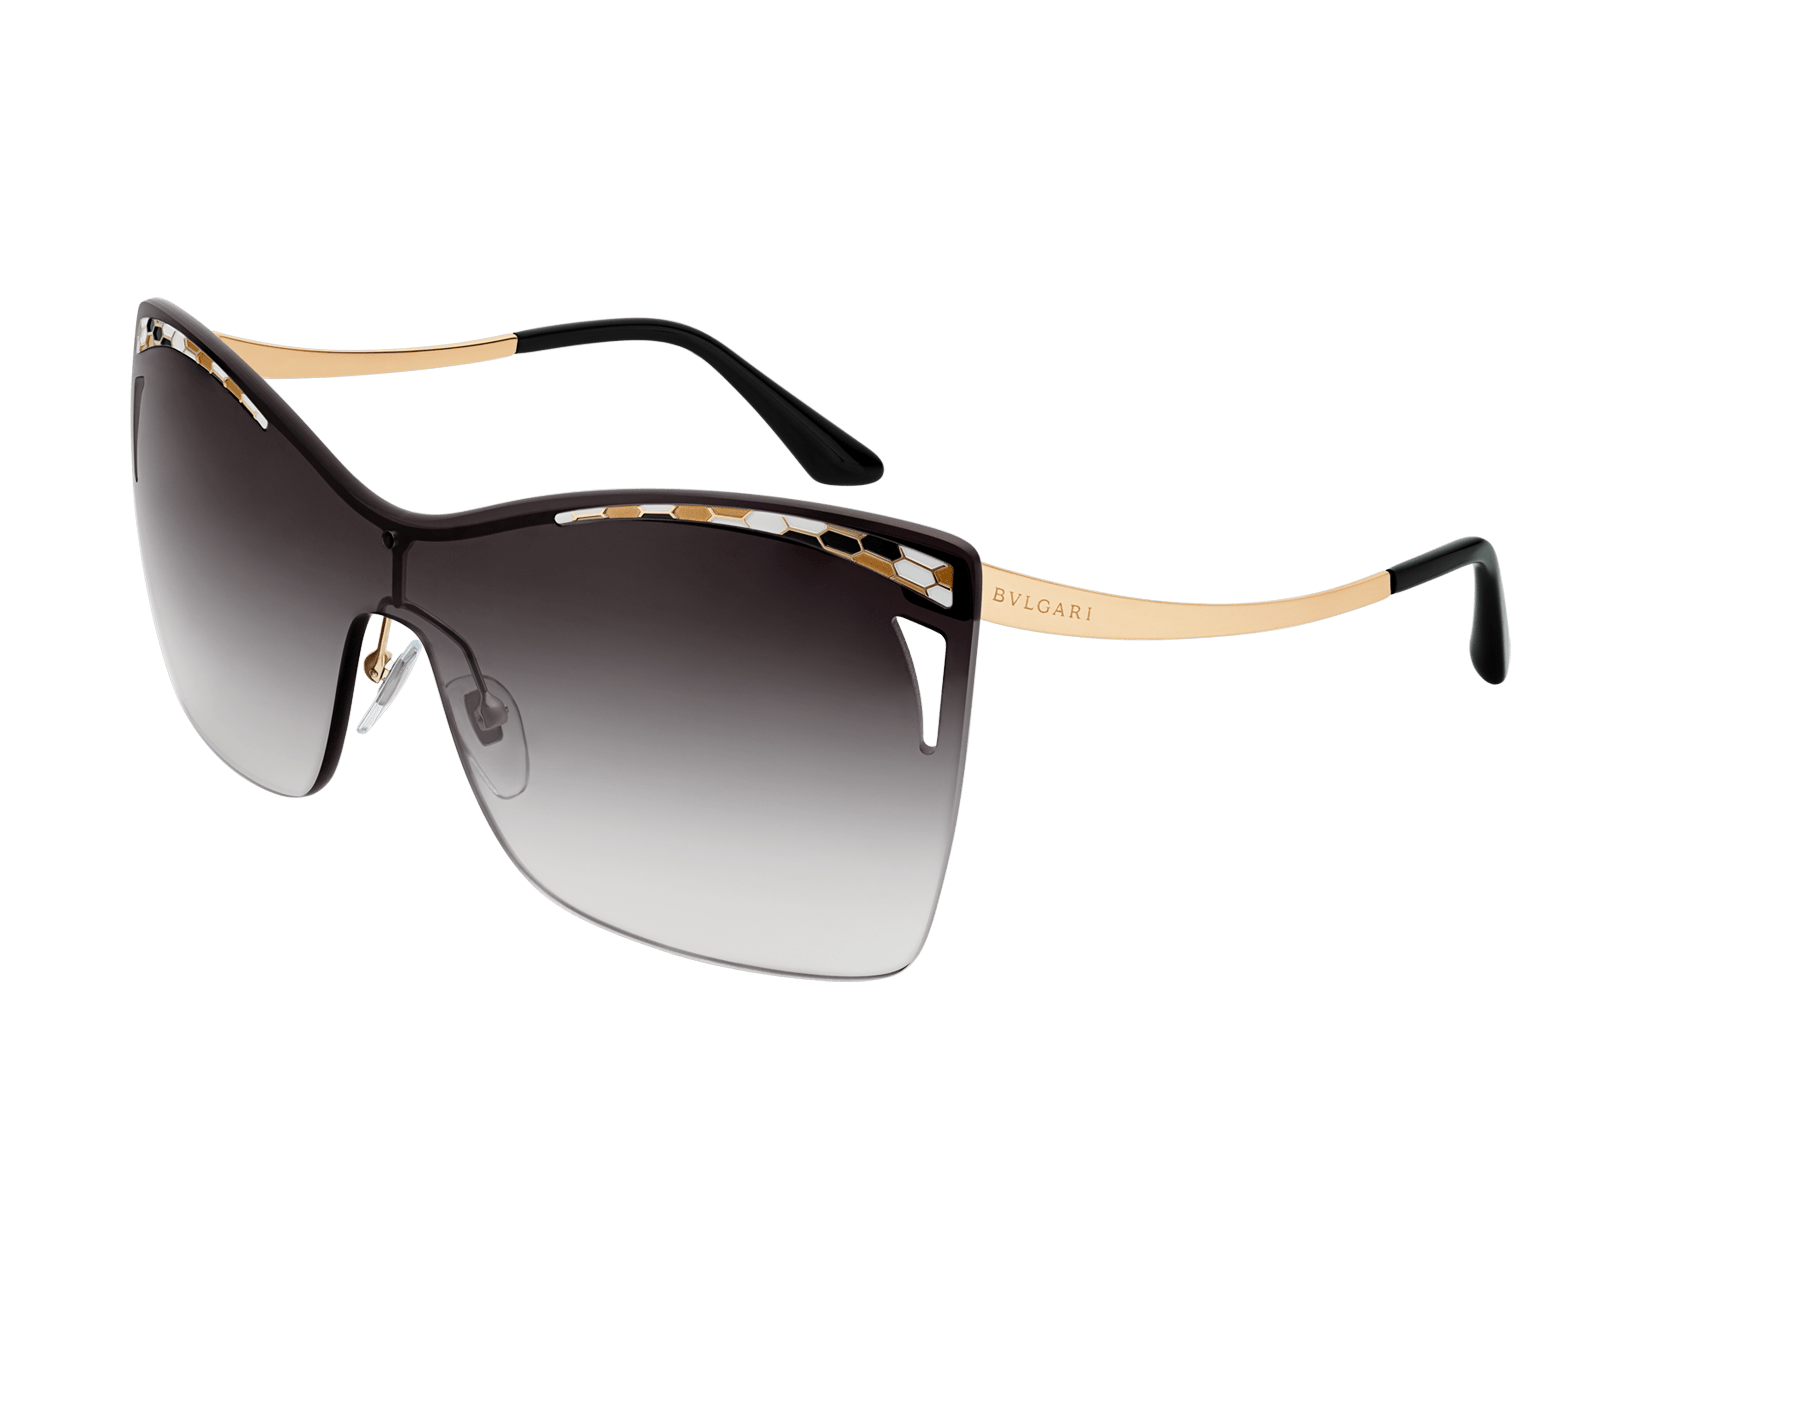 Bulgari Serpenti eye-bite metal shield sunglasses. 903979 image 1